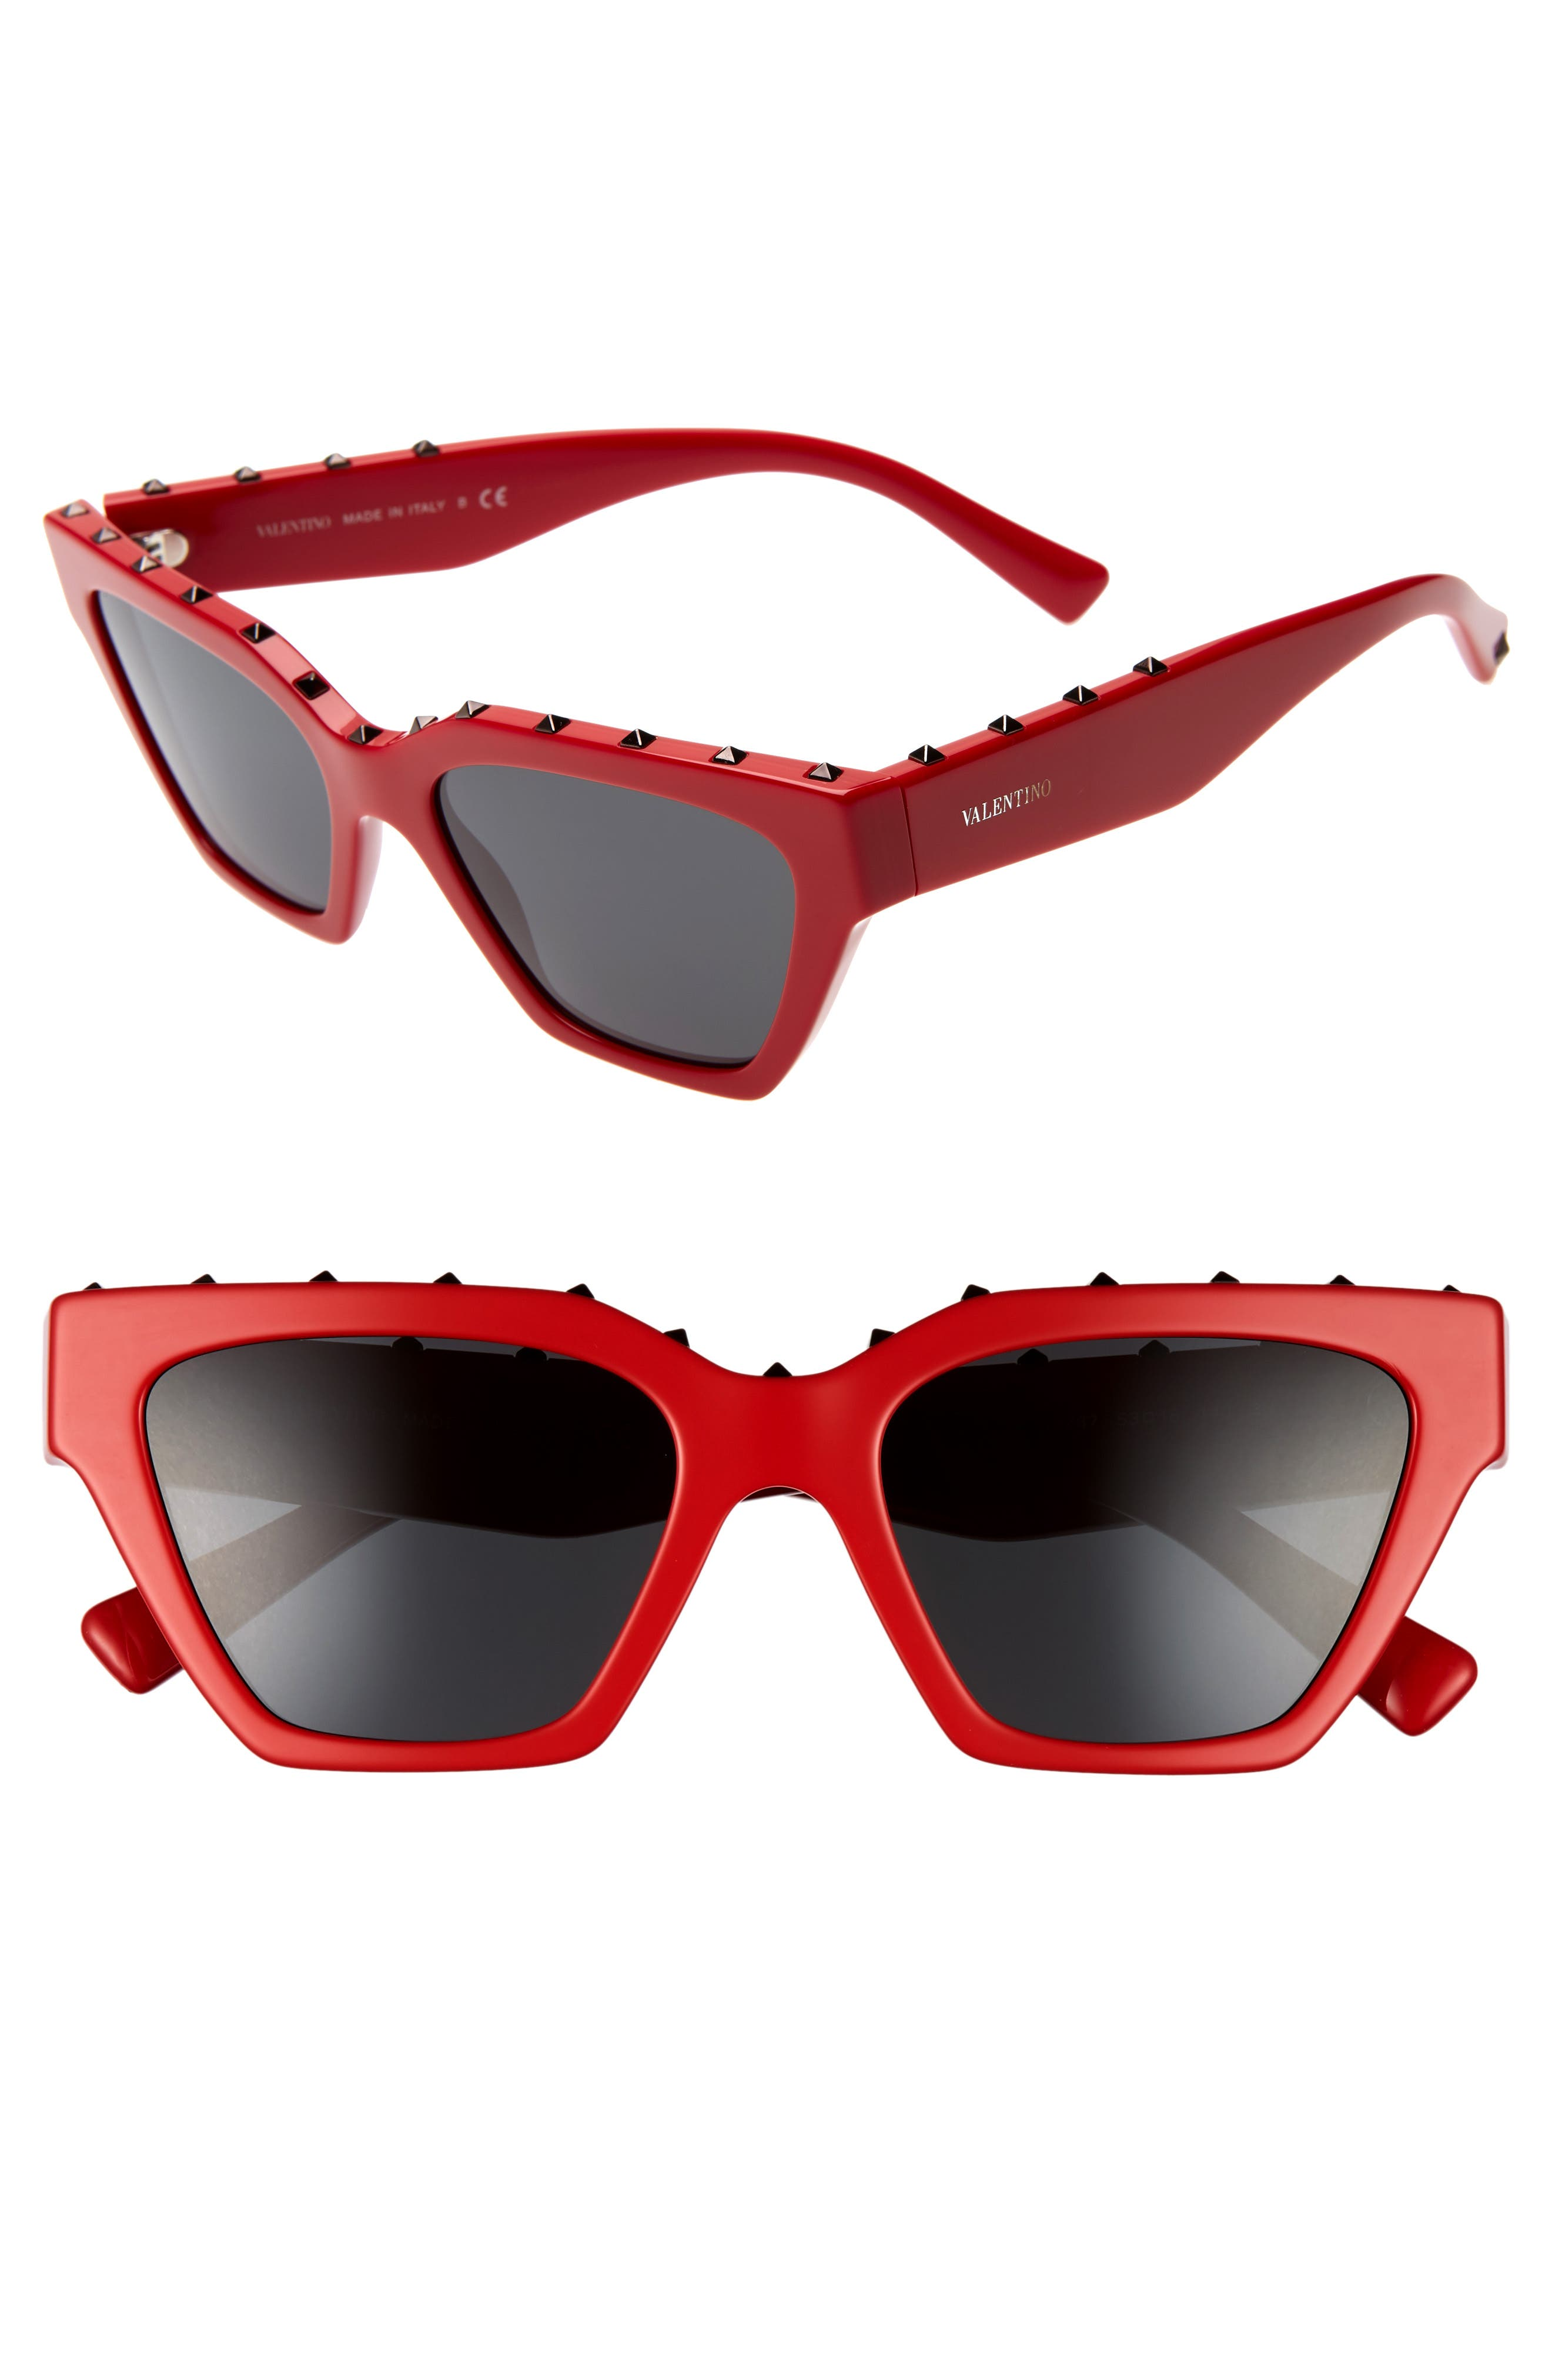 Valentino 5m Rockstud Cat Eye Sunglasses - Red Solid